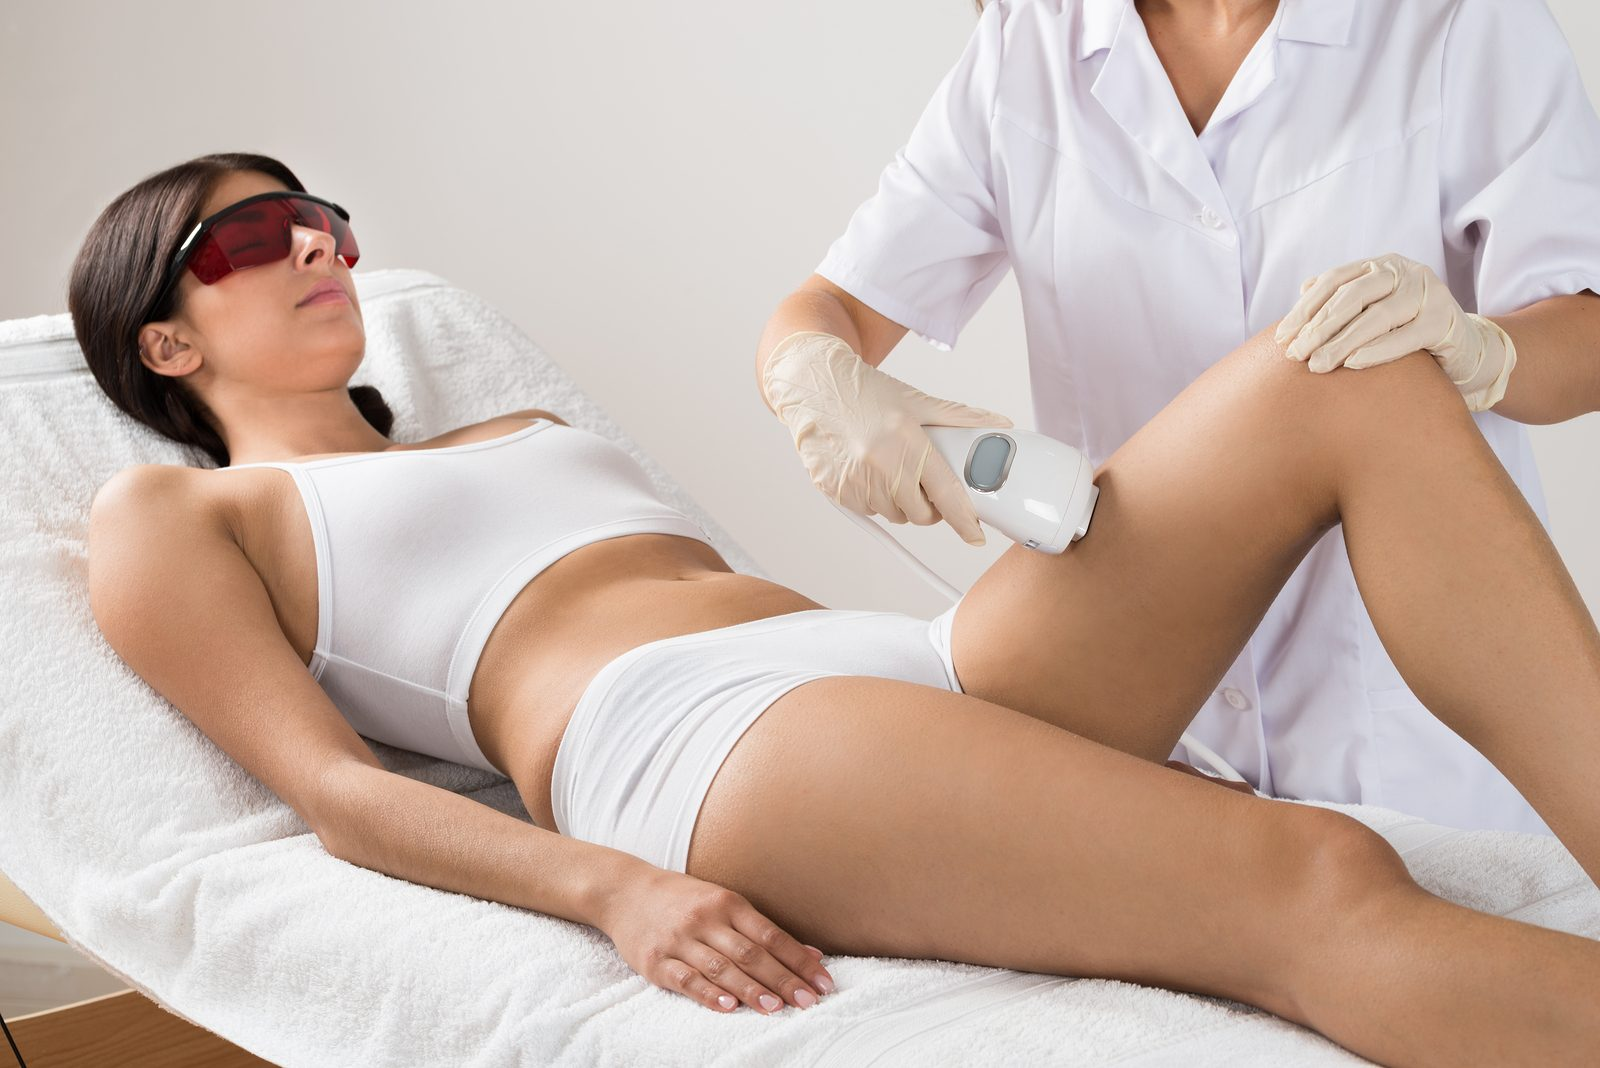 Bigstock Person Giving Laser Therapy To